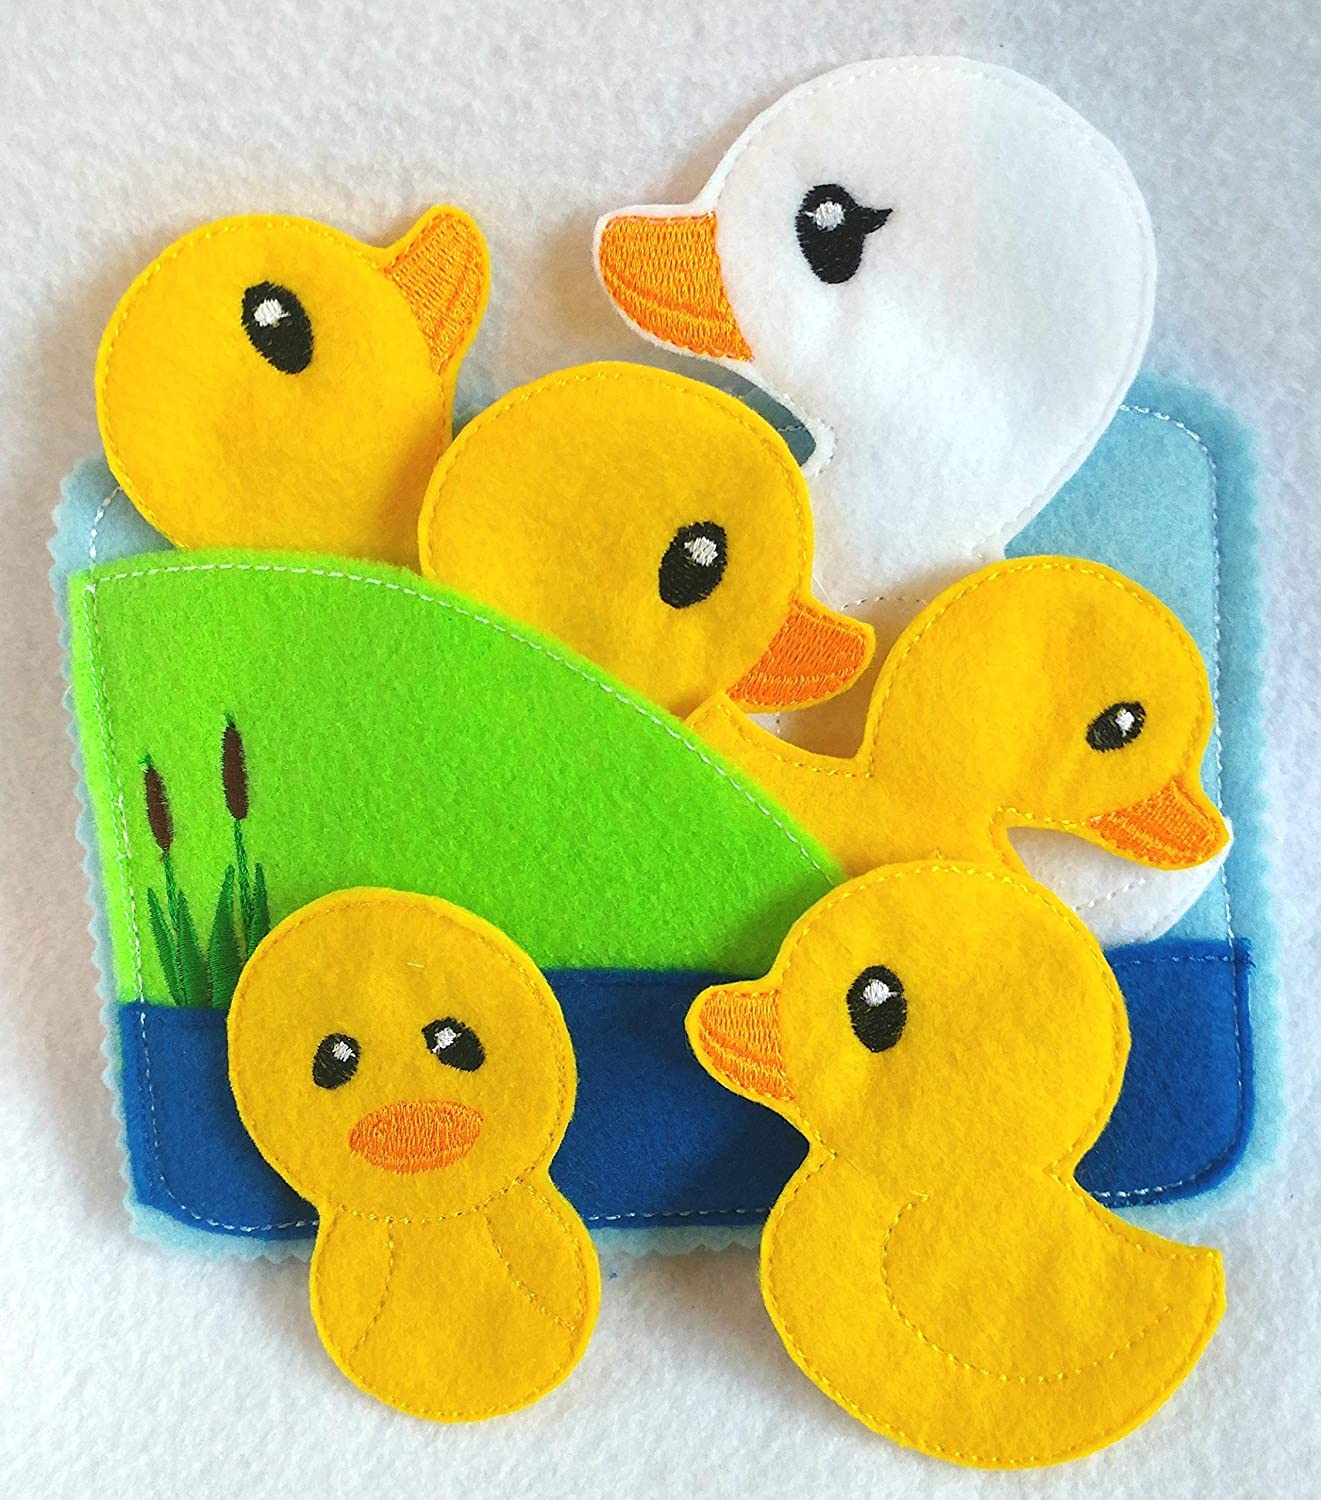 5 little ducks Felt quiet book toddler page and flannel board play set - QB146